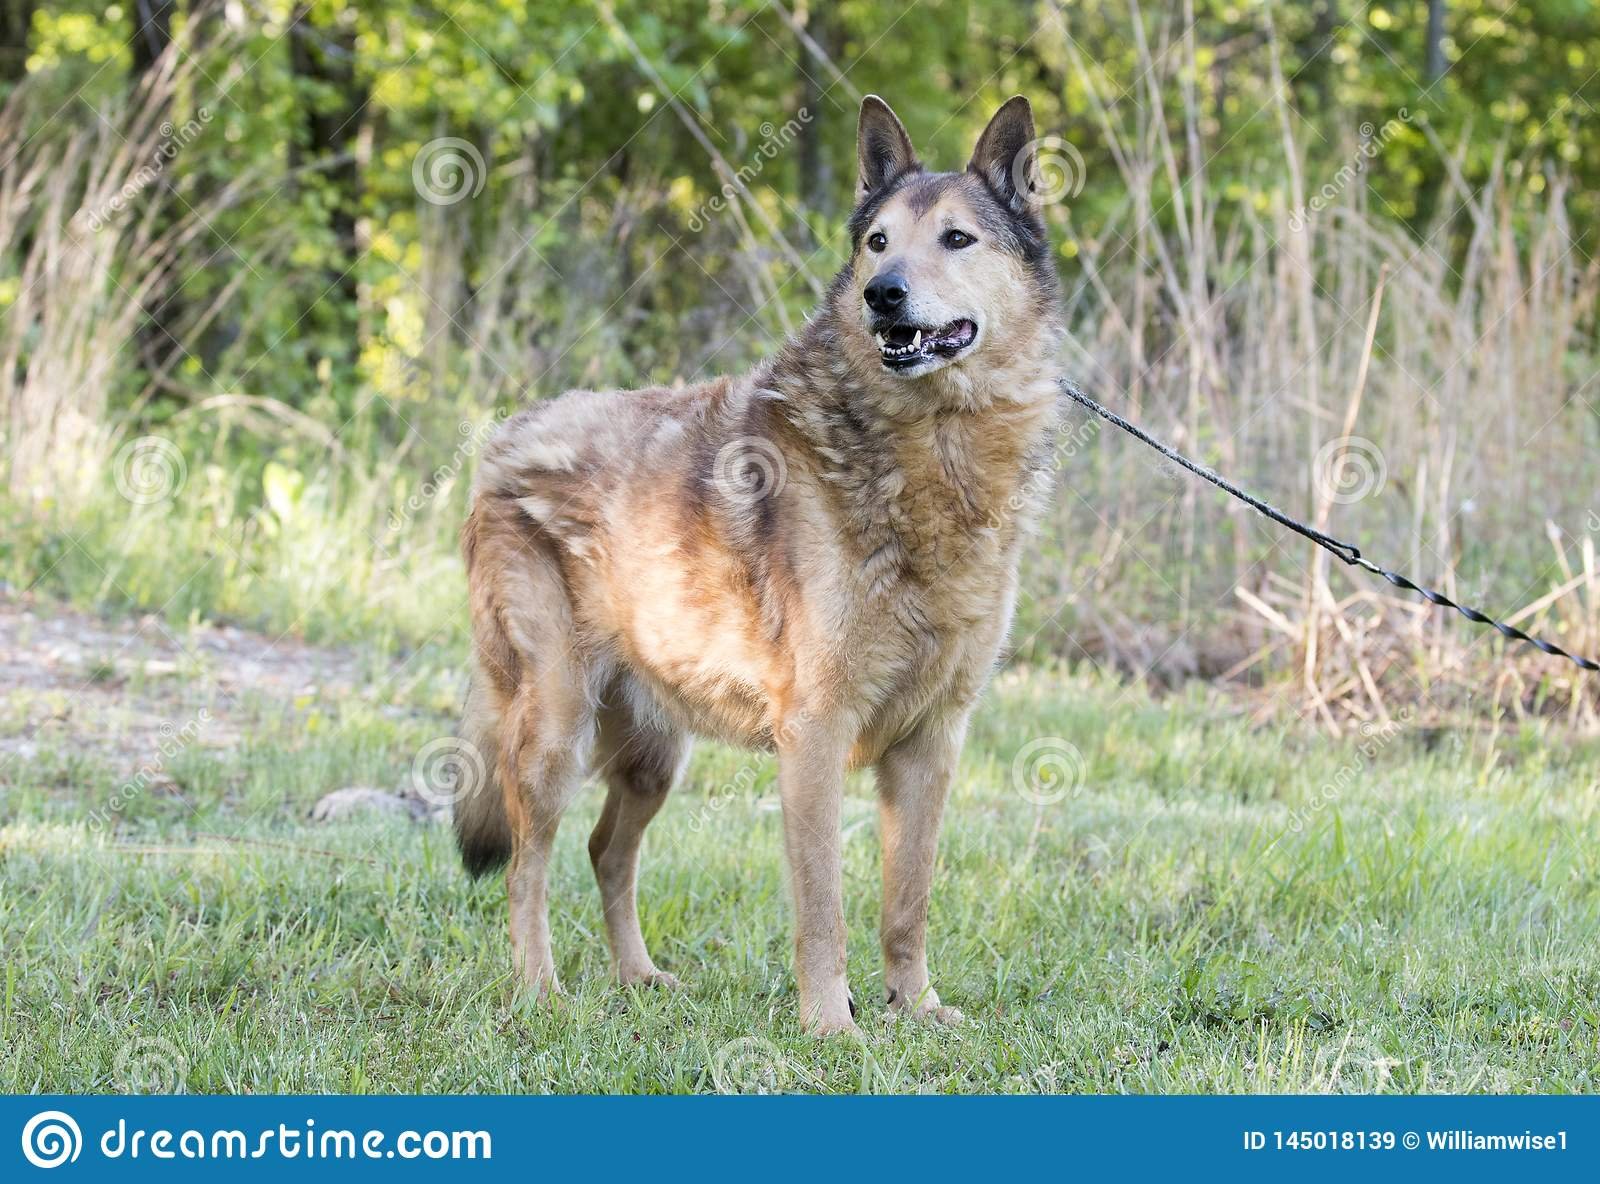 Senior Collie and German Shepherd mix breed dog